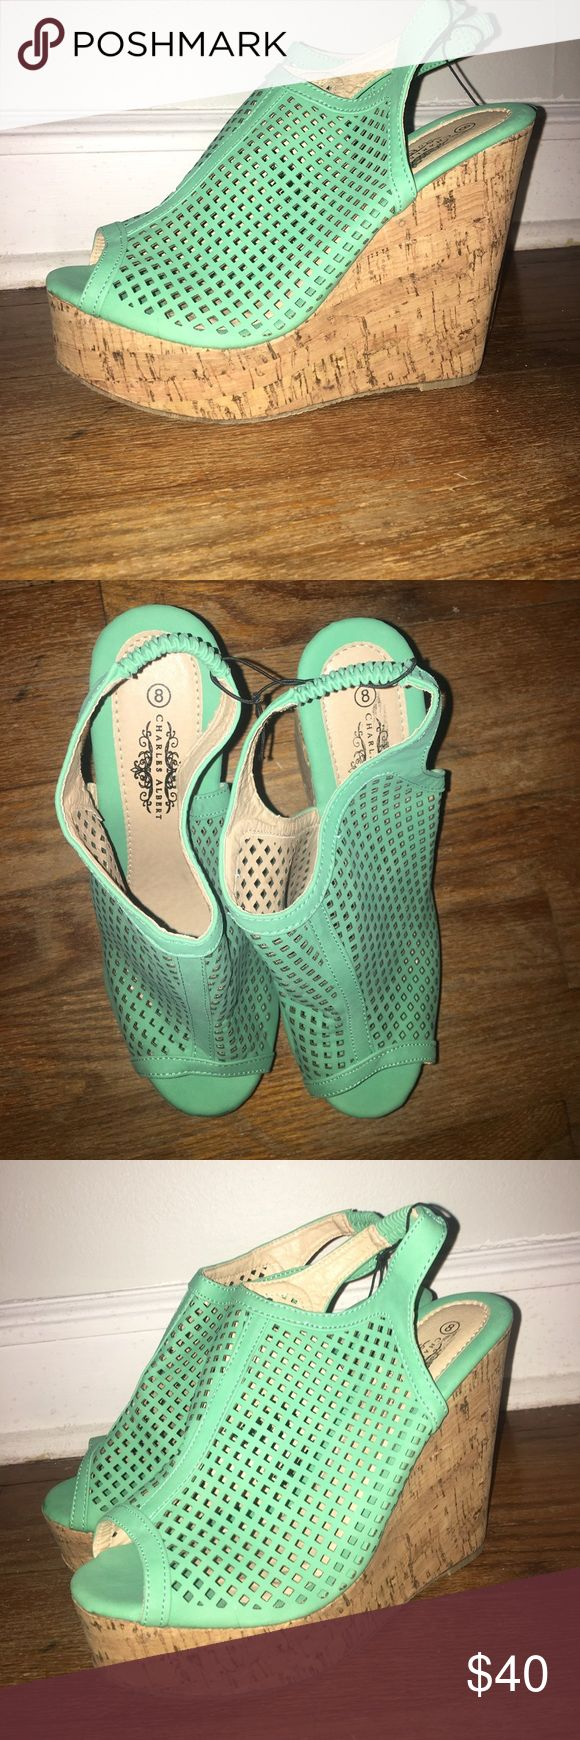 Charles Albert turquoise wedges brand new, never worn, women's size 8, 4 inch heel Shoes Wedges